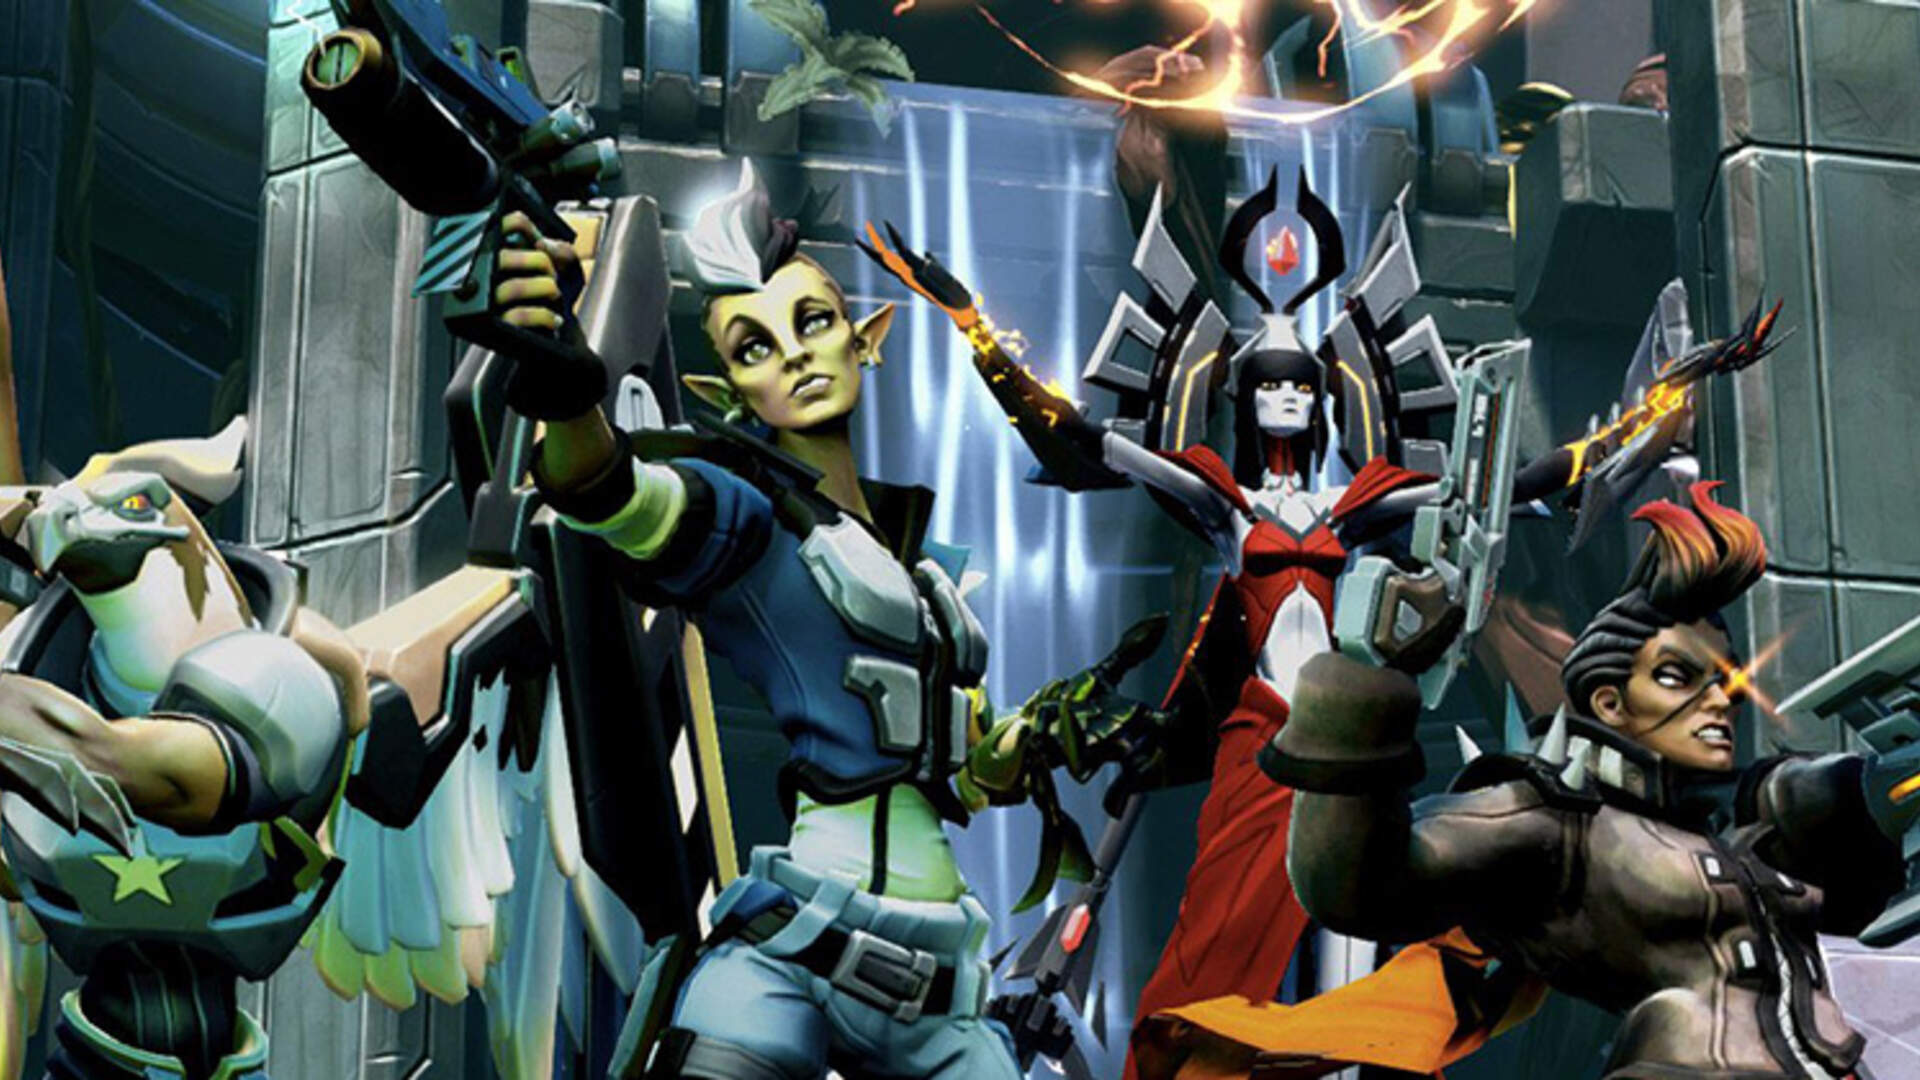 Battleborn PC Review: Melting Pot